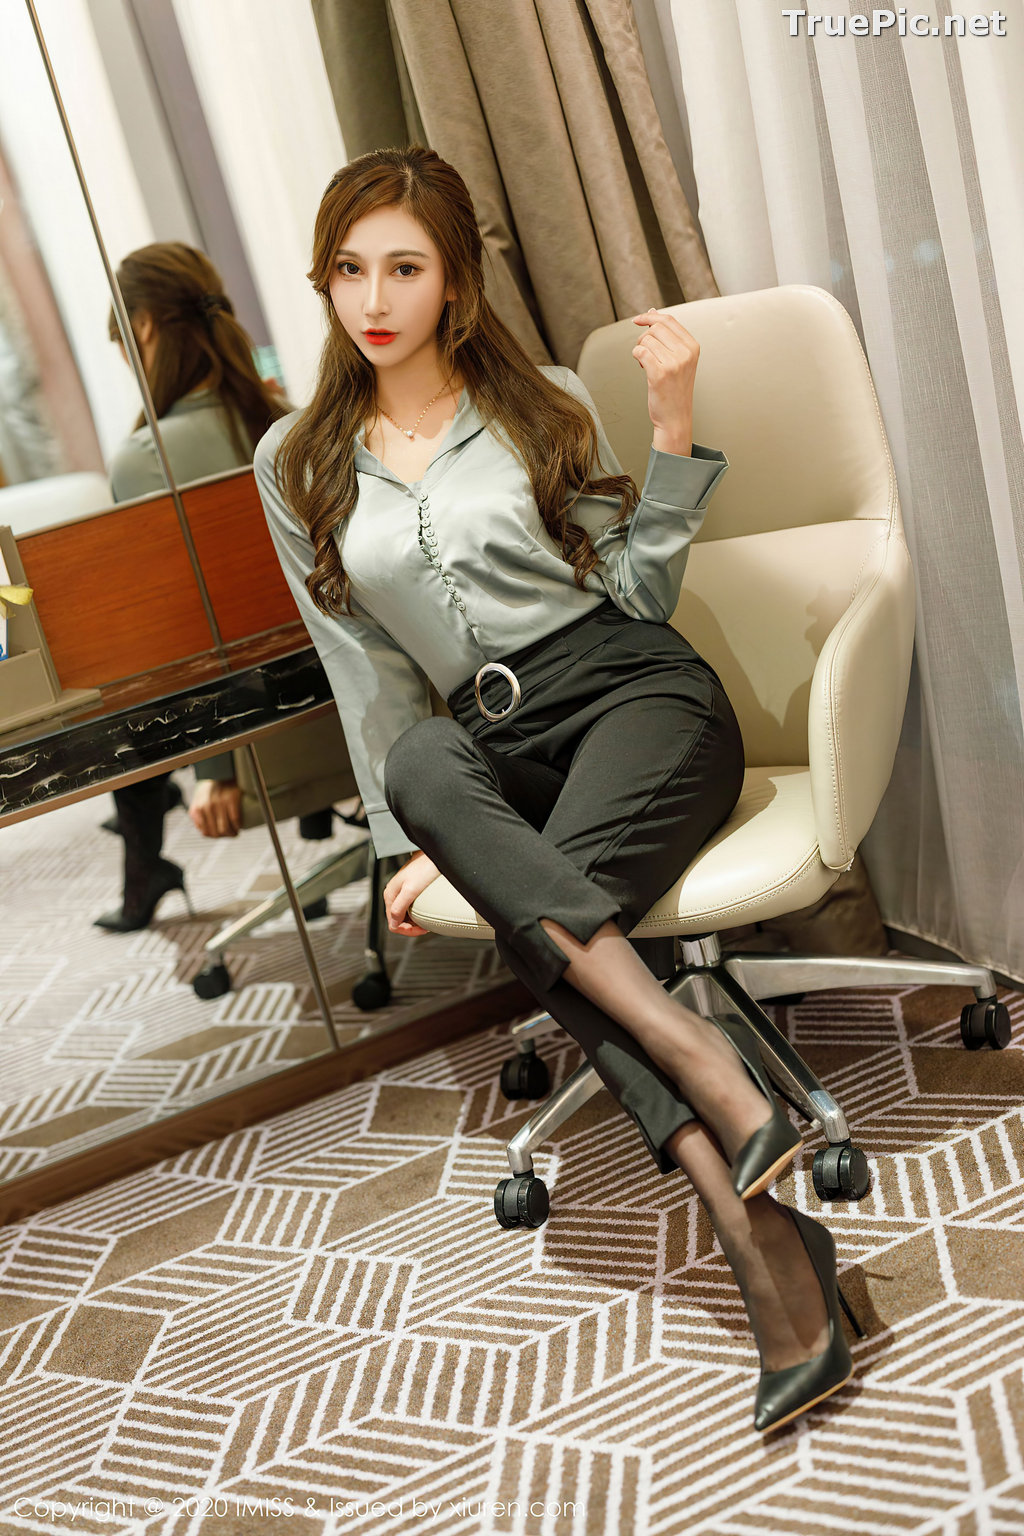 Image IMISS Vol.492 - Chinese Model - Lavinia肉肉 - Long Legs Office Girl - TruePic.net - Picture-1